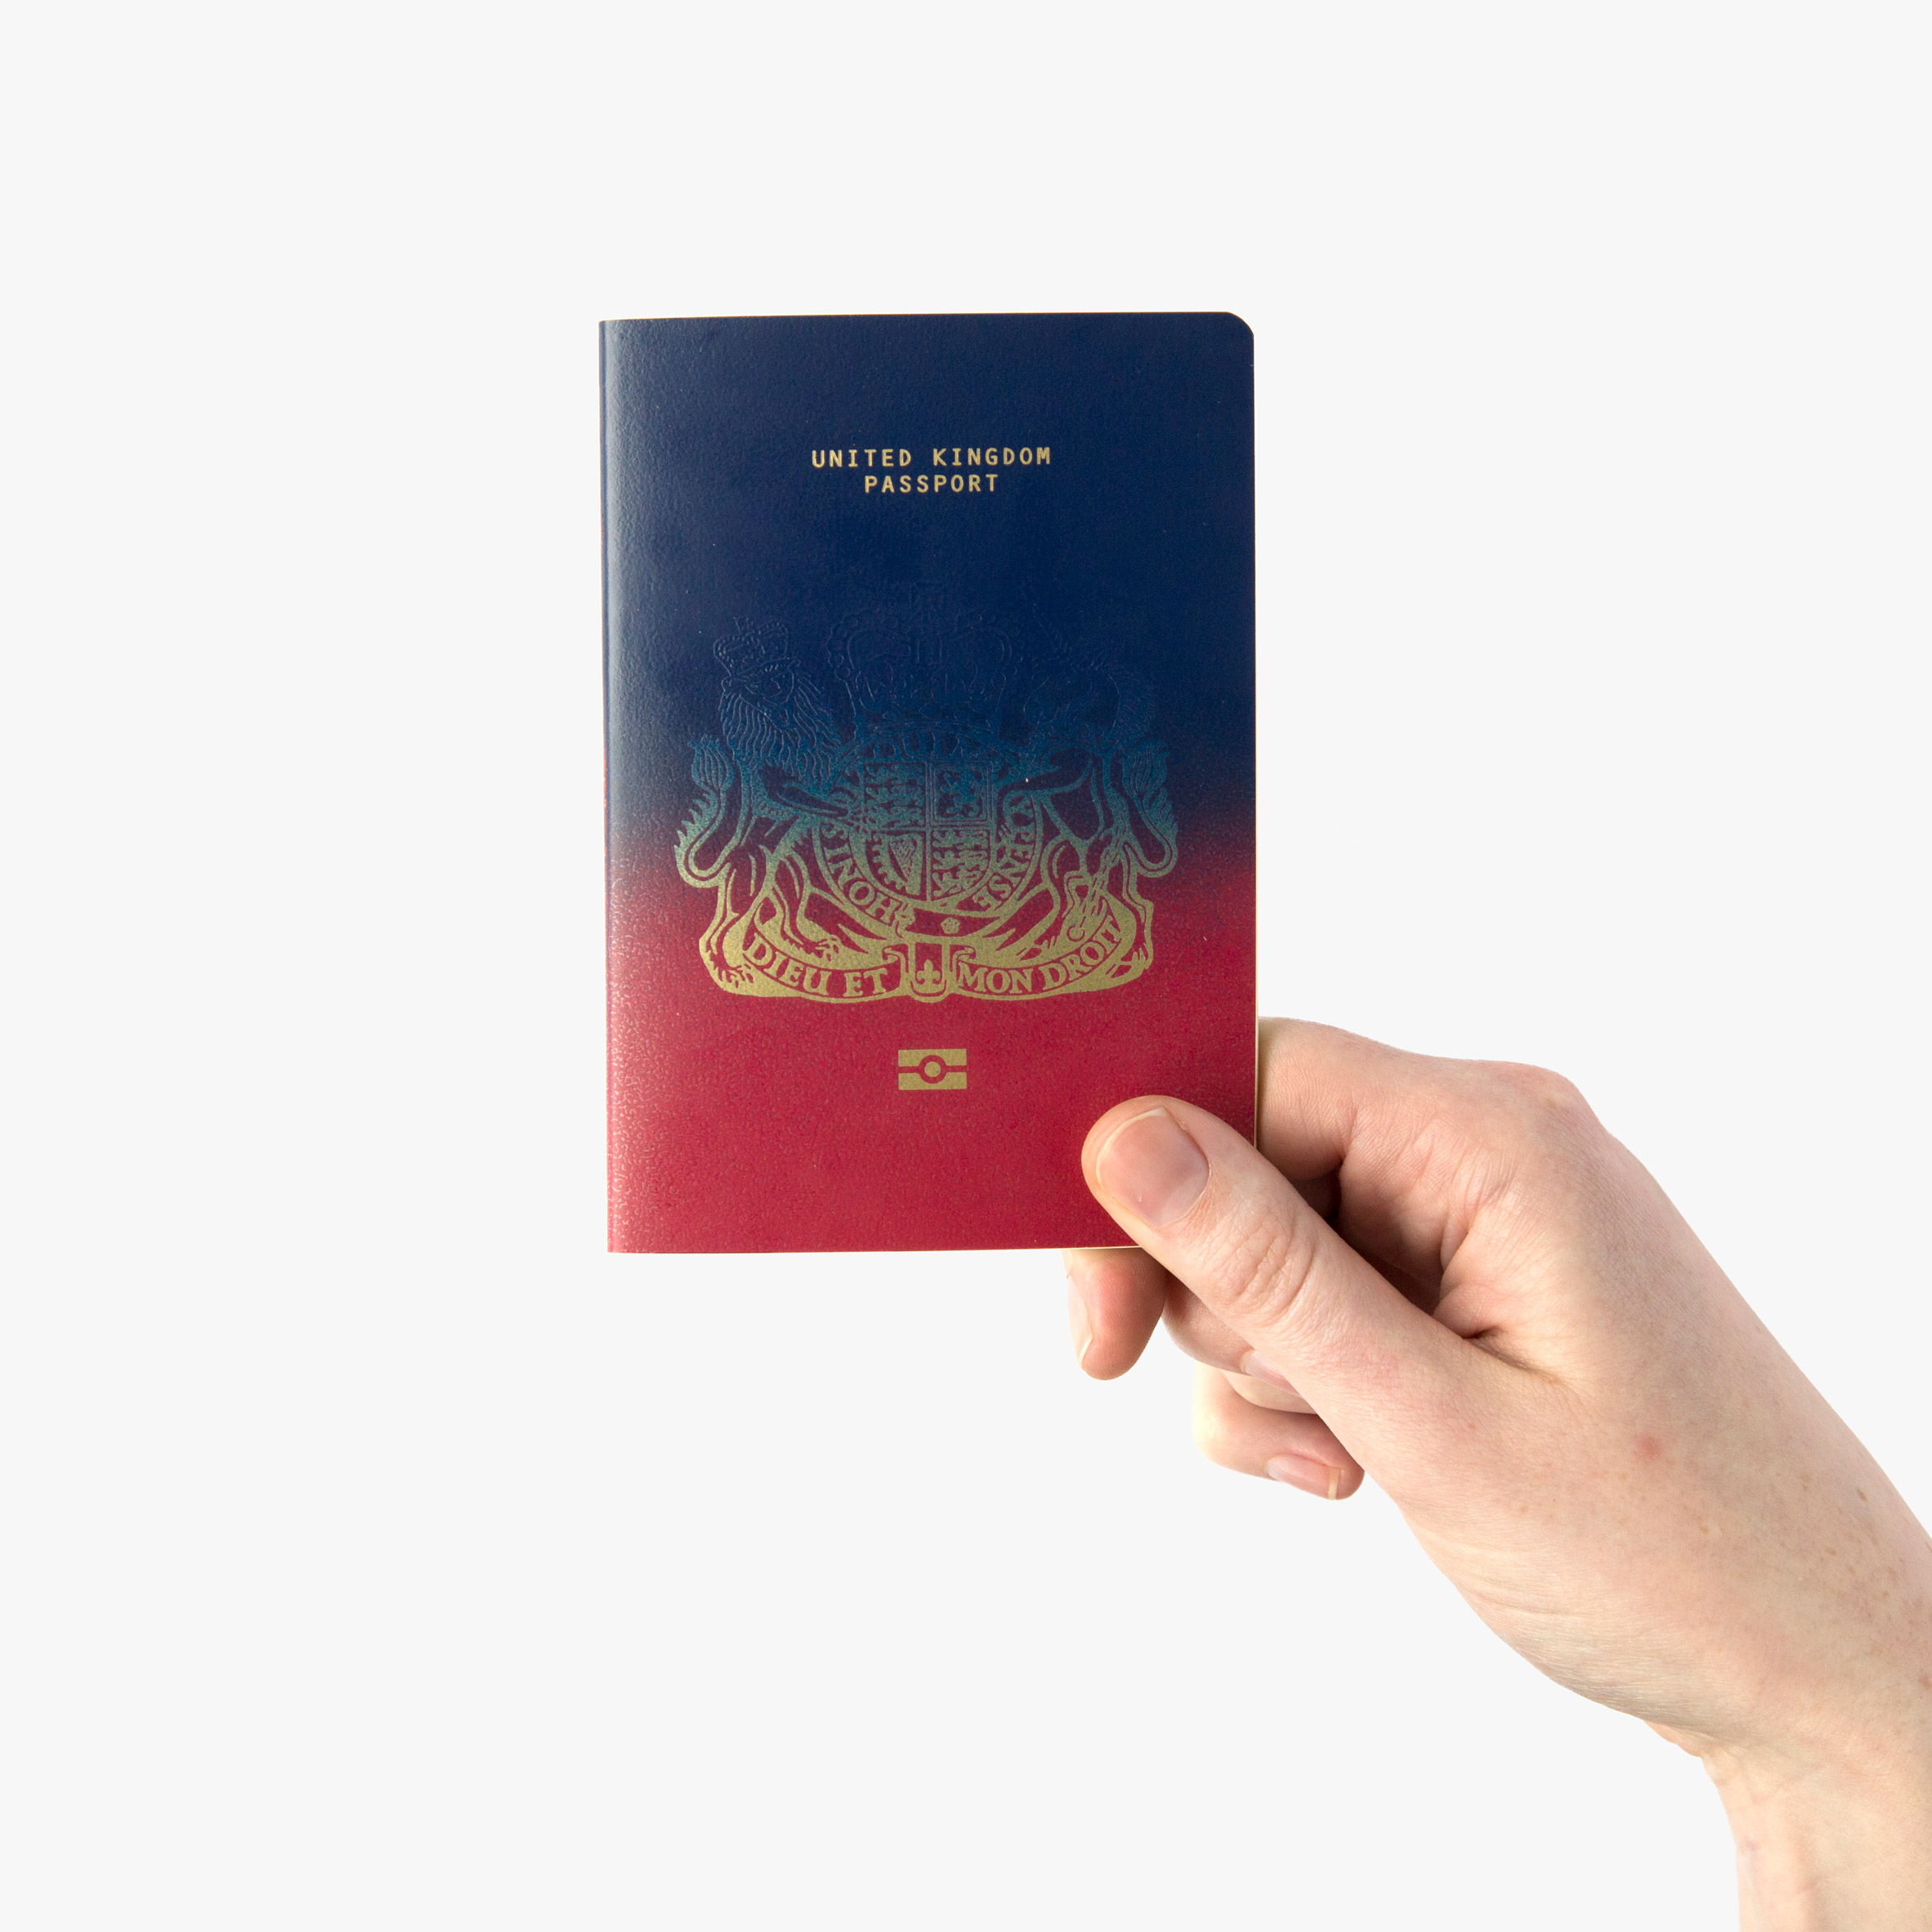 """Poetic and powerful"" proposal by Scottish designer wins £1,000 Brexit passport design competition"